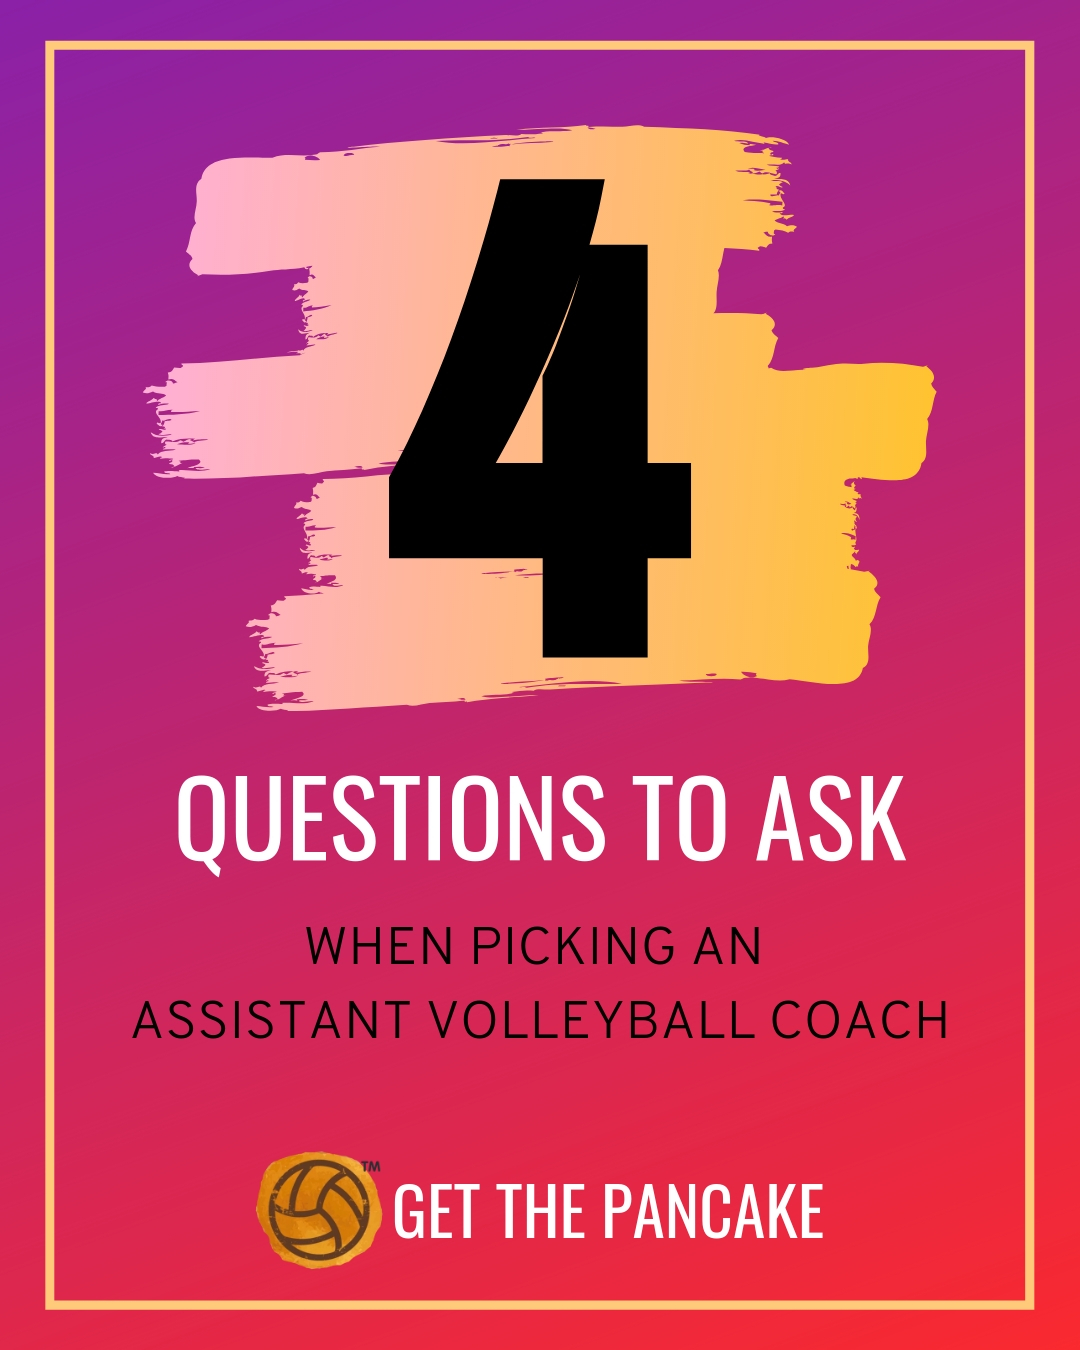 4 QUESTIONS TO ASK ASSISTANT VOLLEYBALL COACH (1).jpg